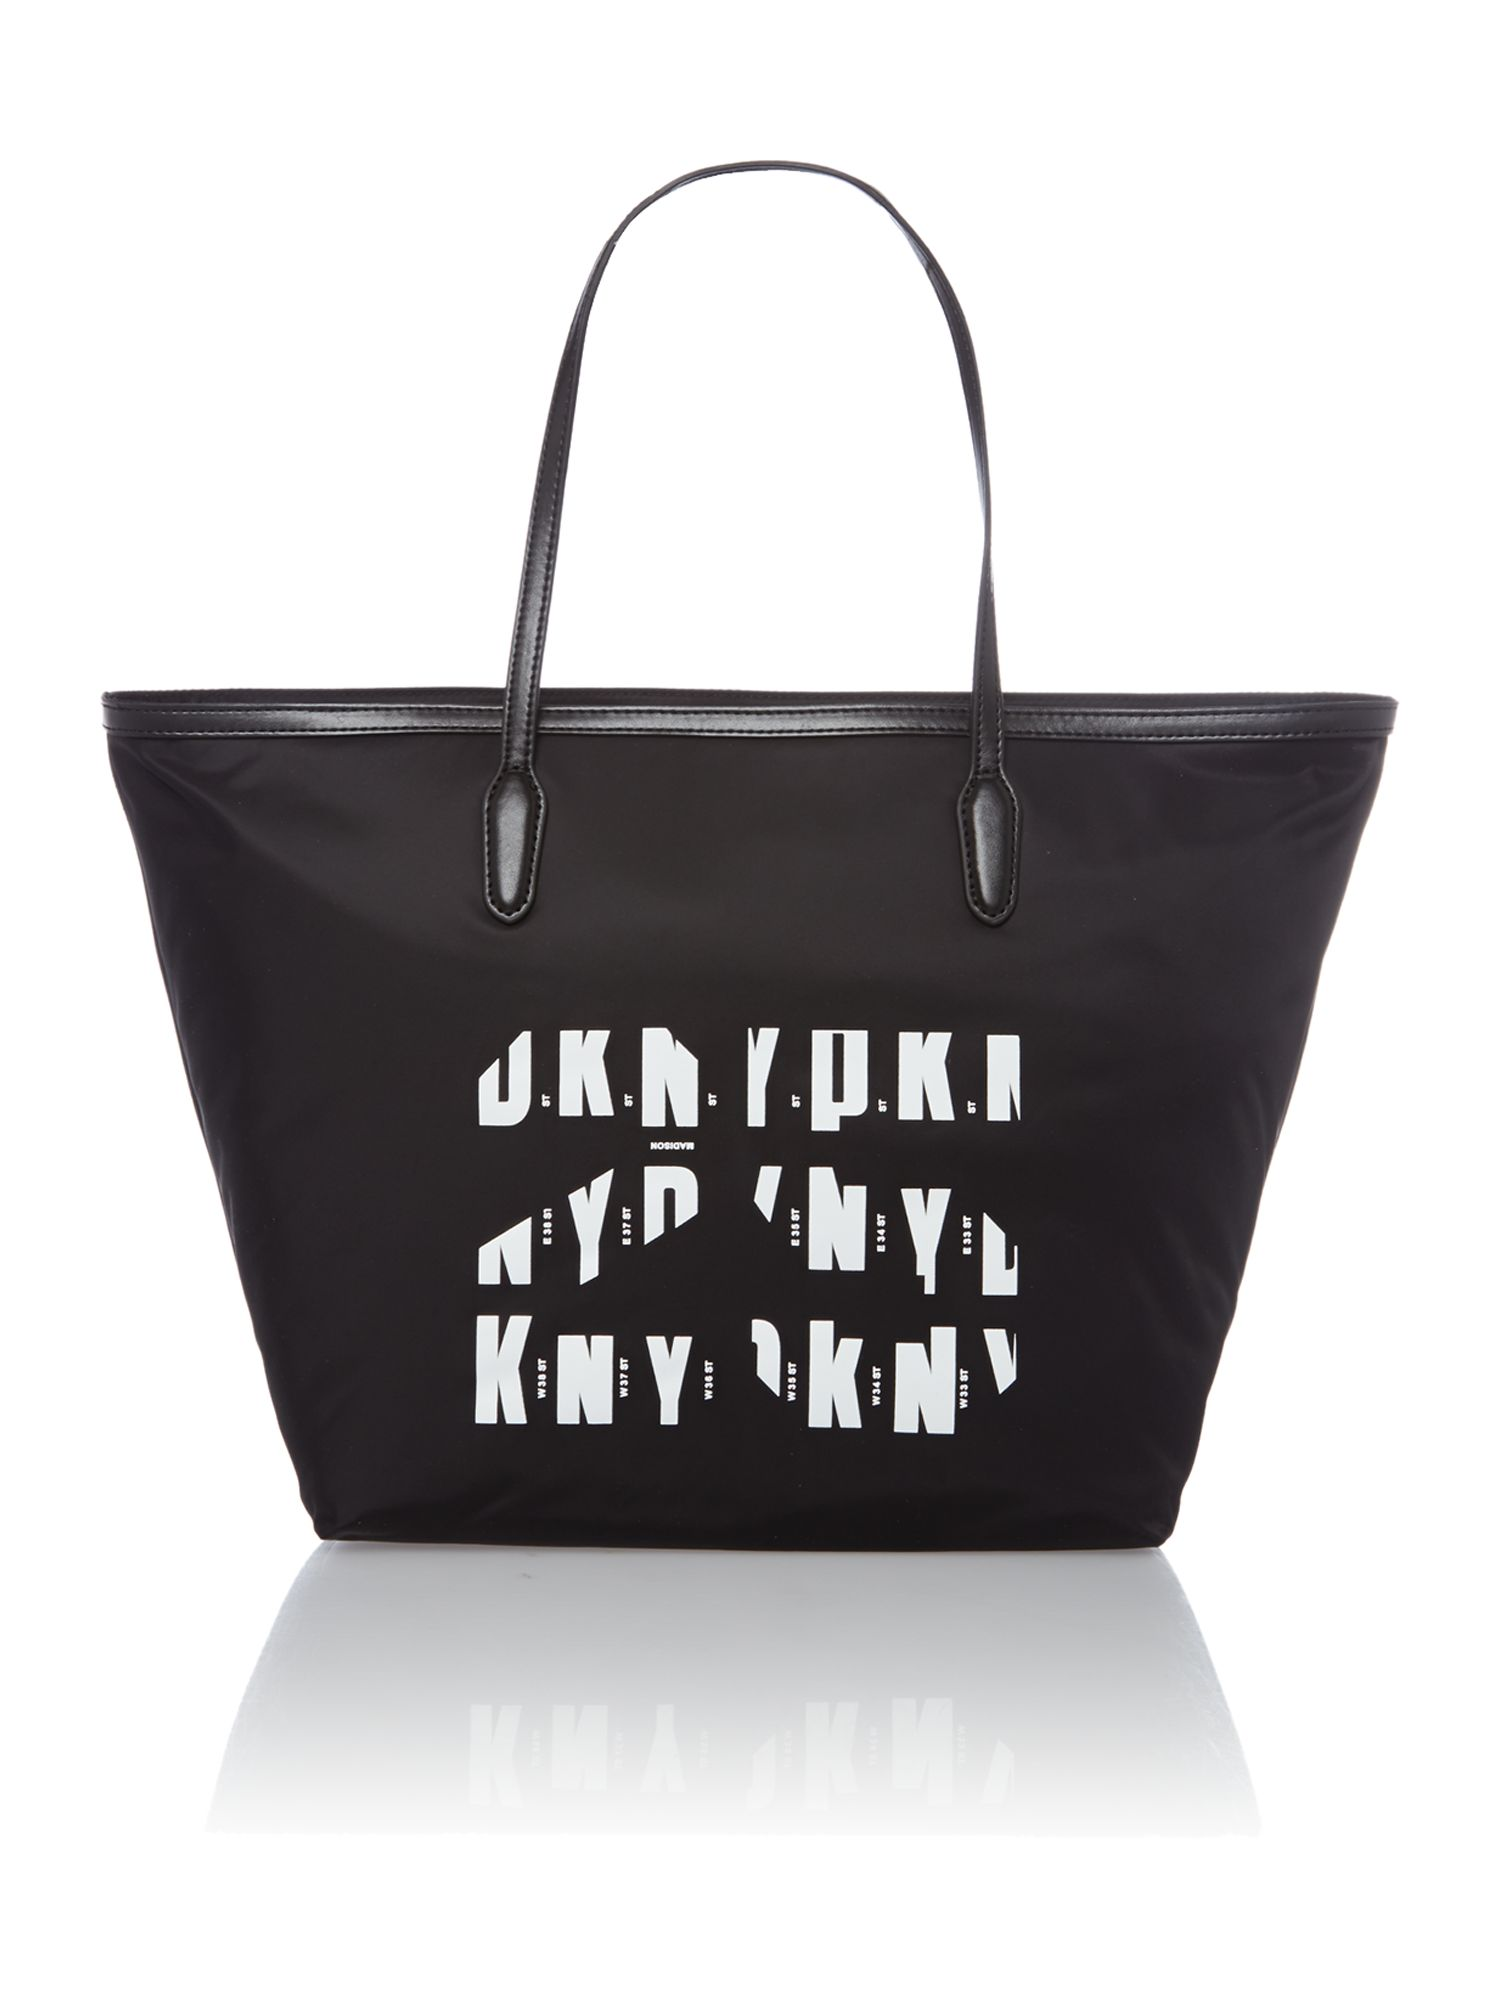 Black anniversary tote bag